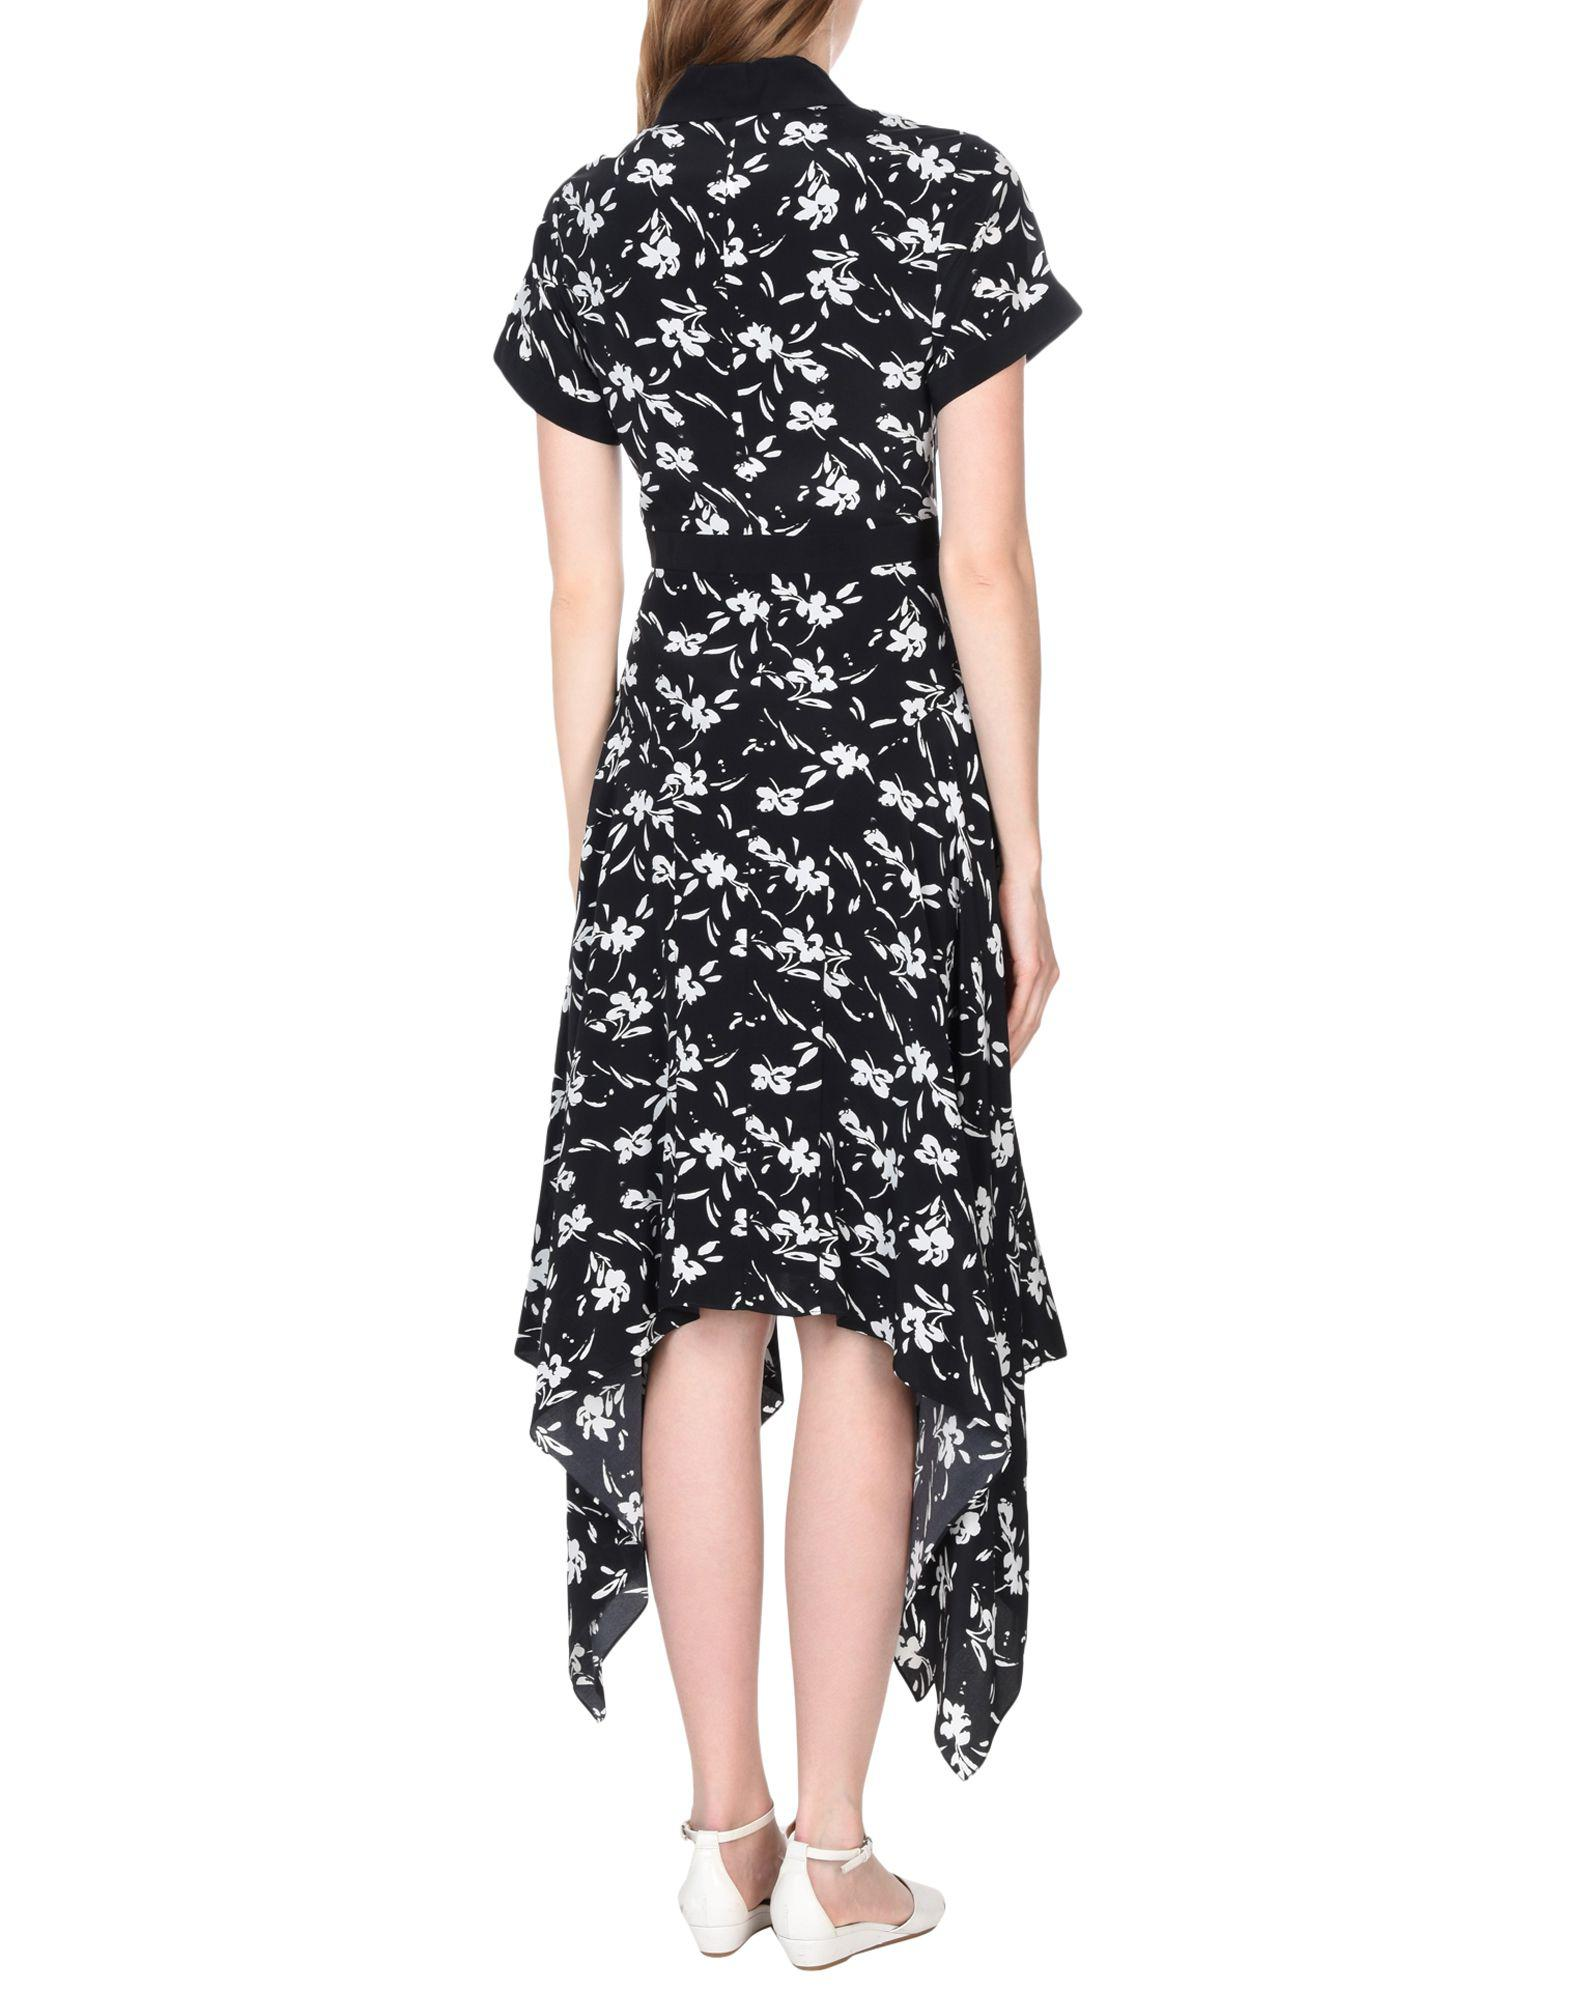 DRESSES - 3/4 length dresses Prabal Gurung